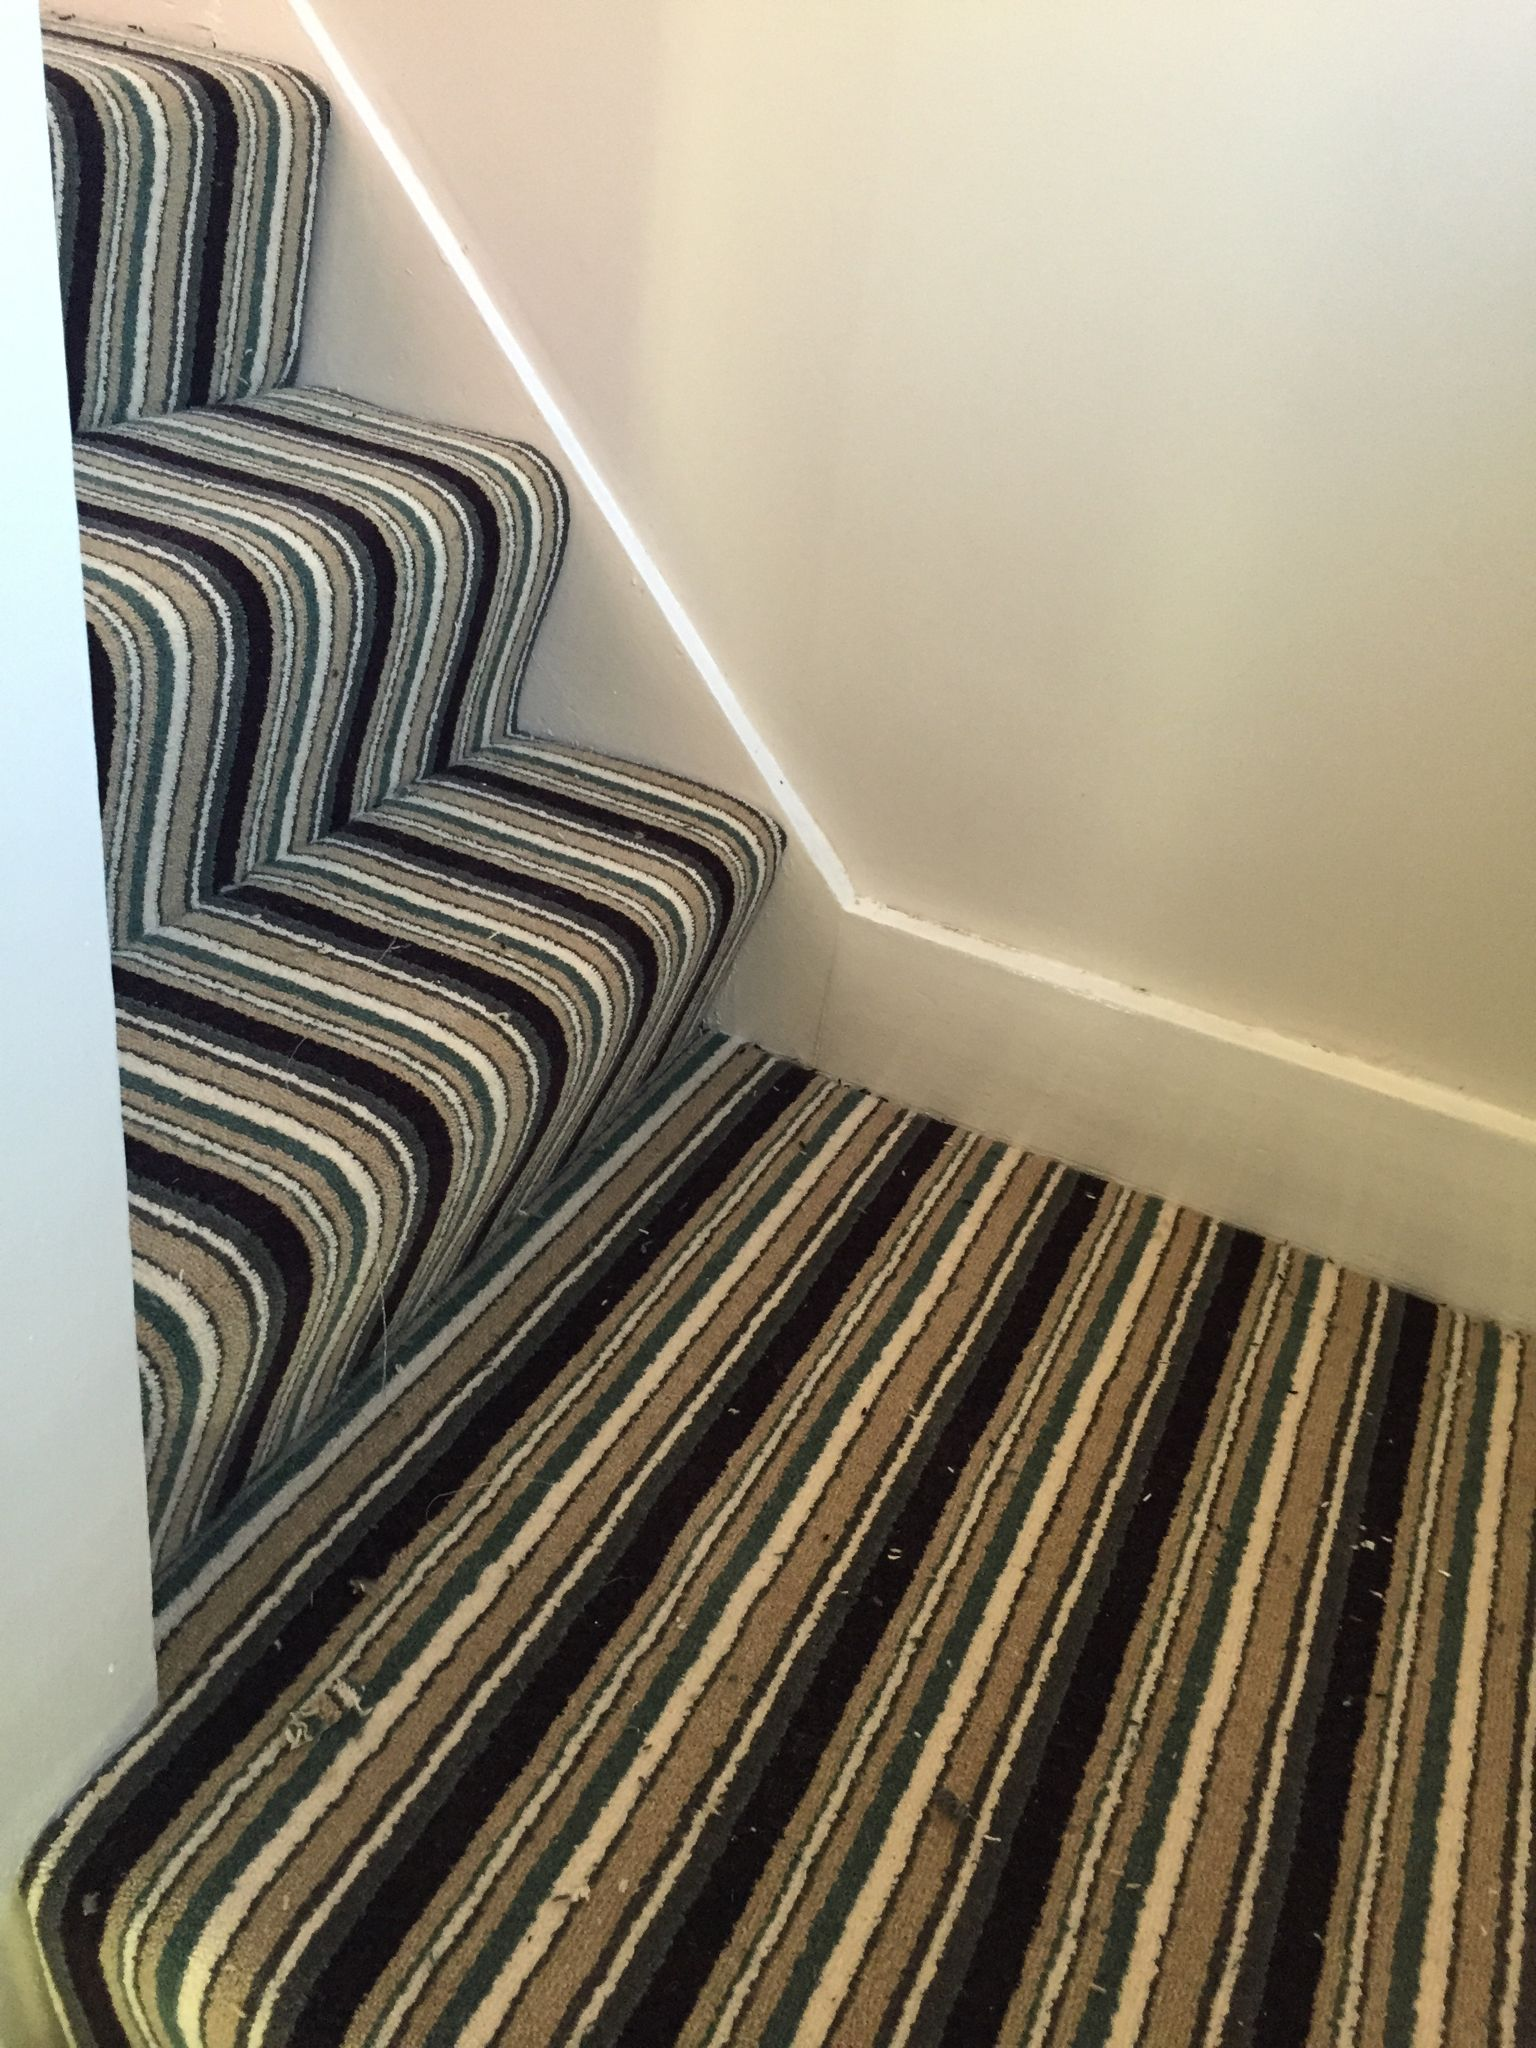 Kingsmead Artwork Stripe Carpet Striped Carpets Stair Lighting Printed Rugs